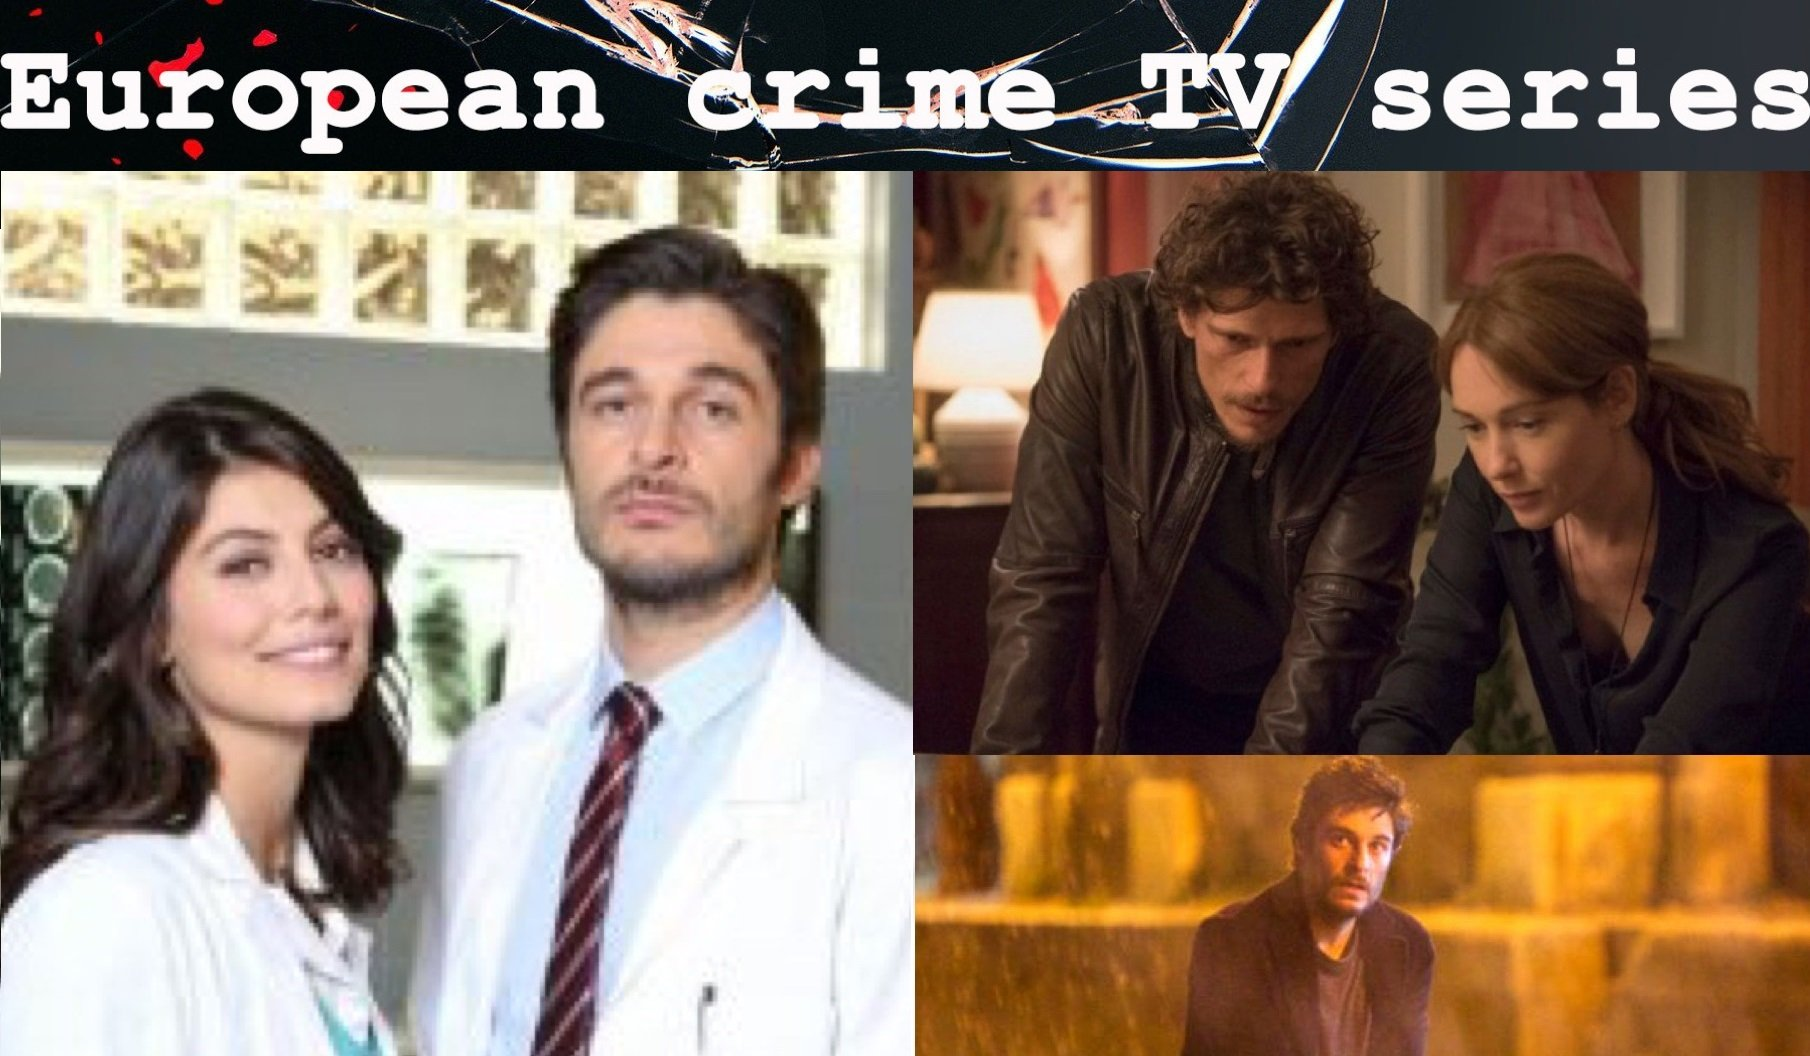 detecting-european-audiences-italia-european-crime-tv-series